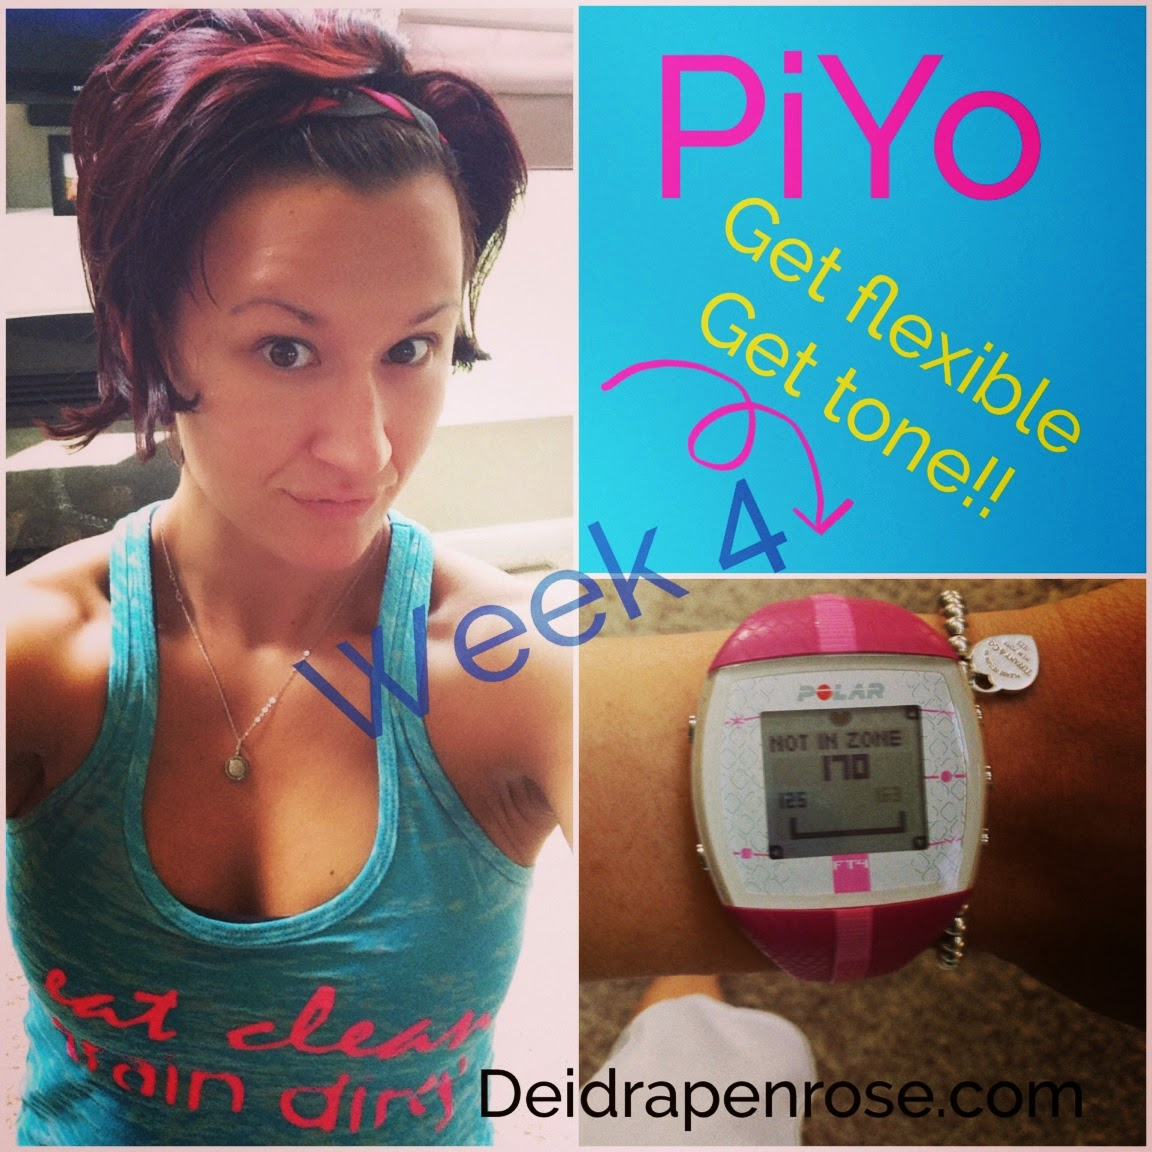 Piyio, piyo test group, piyo chalene johnson, piyo transformation, piyo results, team beach body, team beach body fitness challenge, clean eating, piyo meal plan, piyo release, weight loss, fitness motivation, Deidra Penrose, home workout programs, shakoelogy, low impact workout, yoga, pilates, diet, health shakes, protein shakes, top beach body coach, pittsburgh beach body, pennsylvania beach body, chambersburg beach body, piyo test group beach body